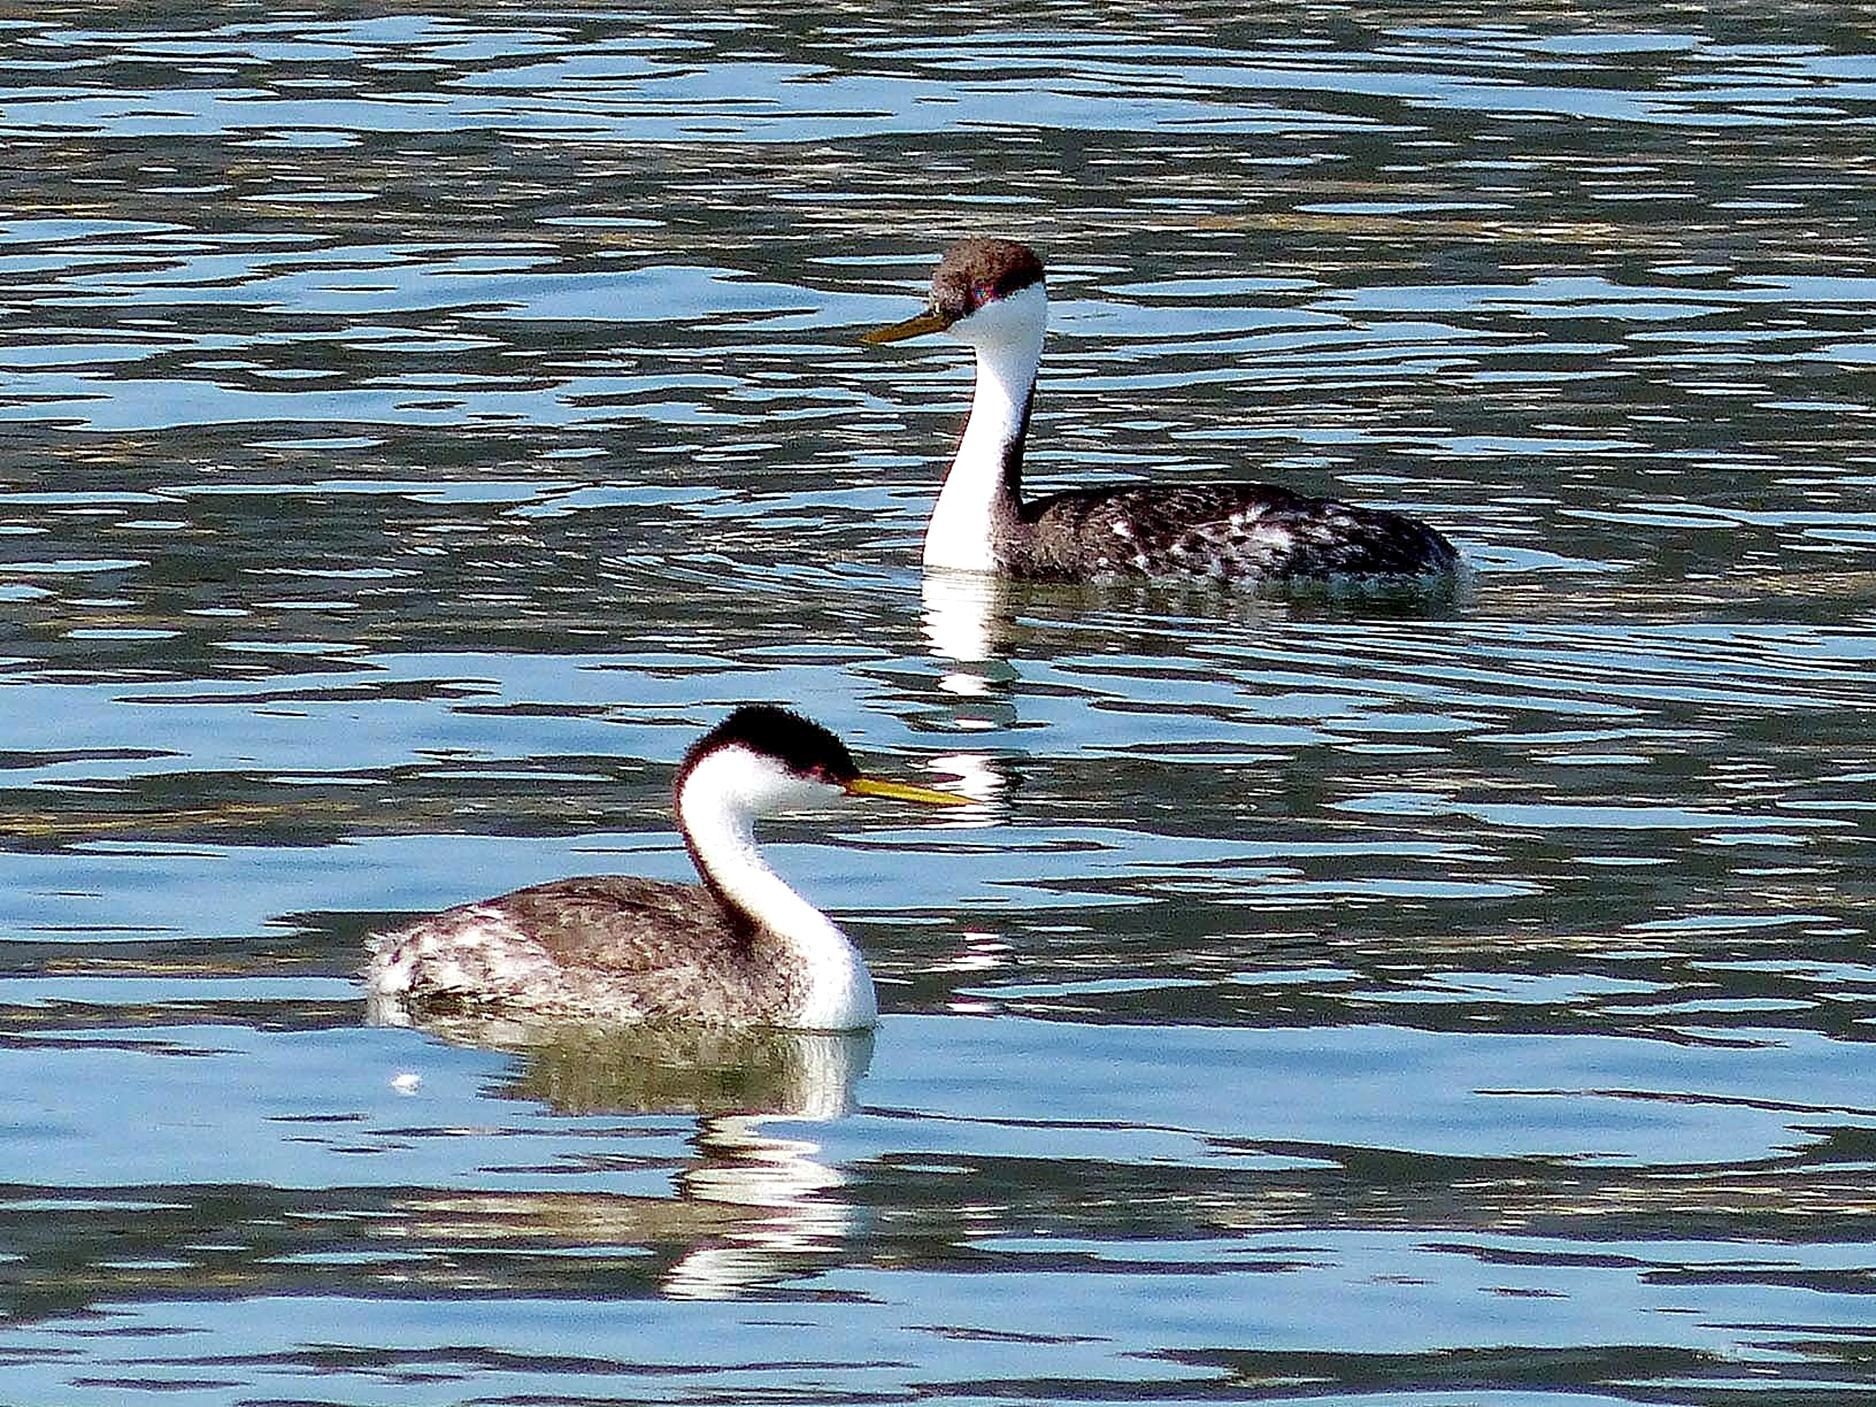 Free photograph; western, grebe, birds, breeds, lakes, ponds